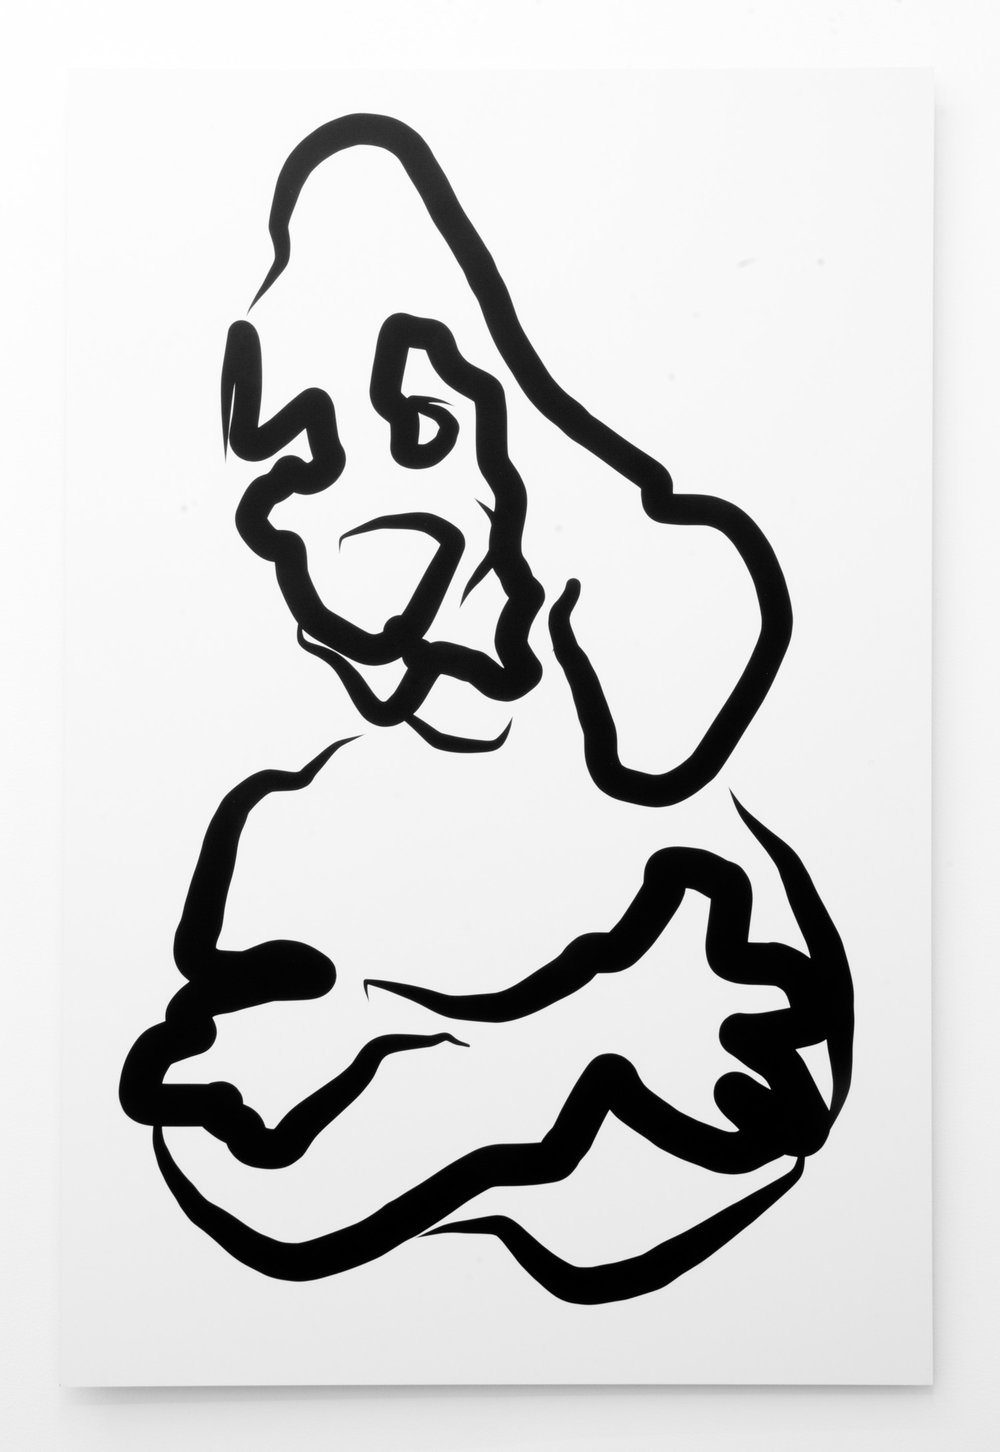 Jon Knight,  Untitled , 2012, inkjet on di-bond, 100 x 66 cm.